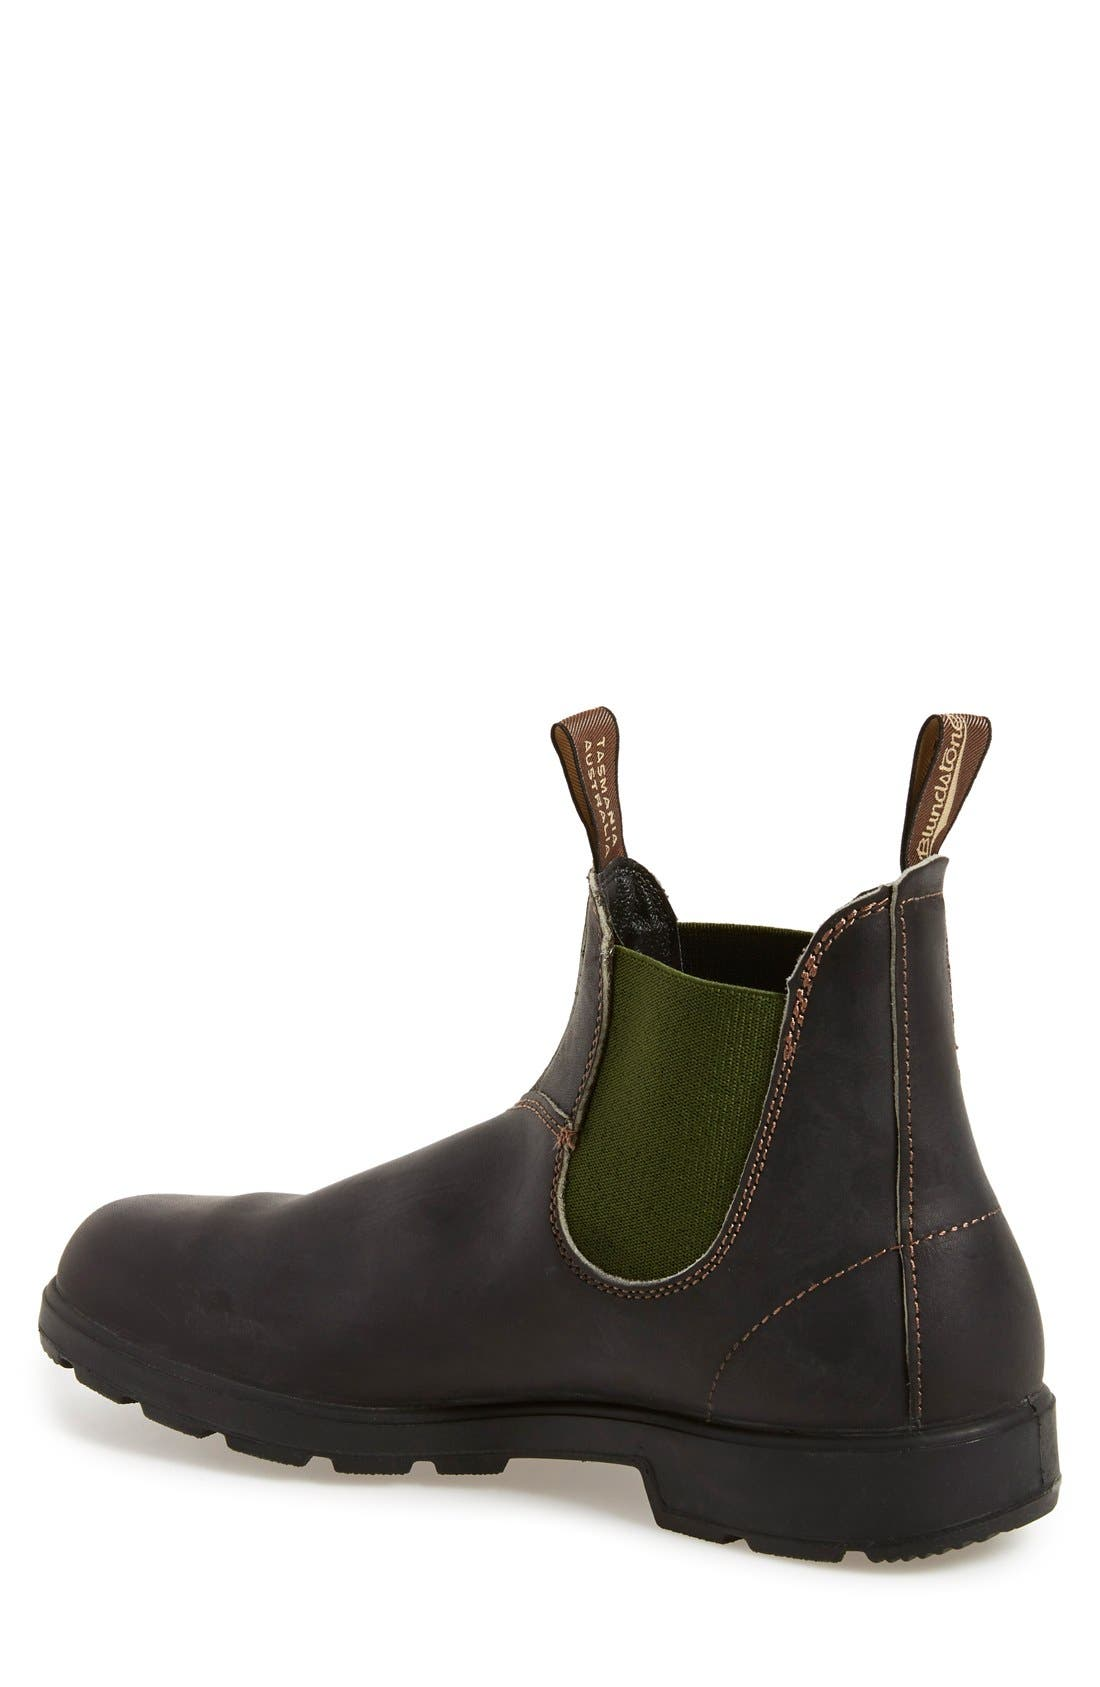 Footwear Chelsea Boot,                             Alternate thumbnail 2, color,                             STOUT BROWN